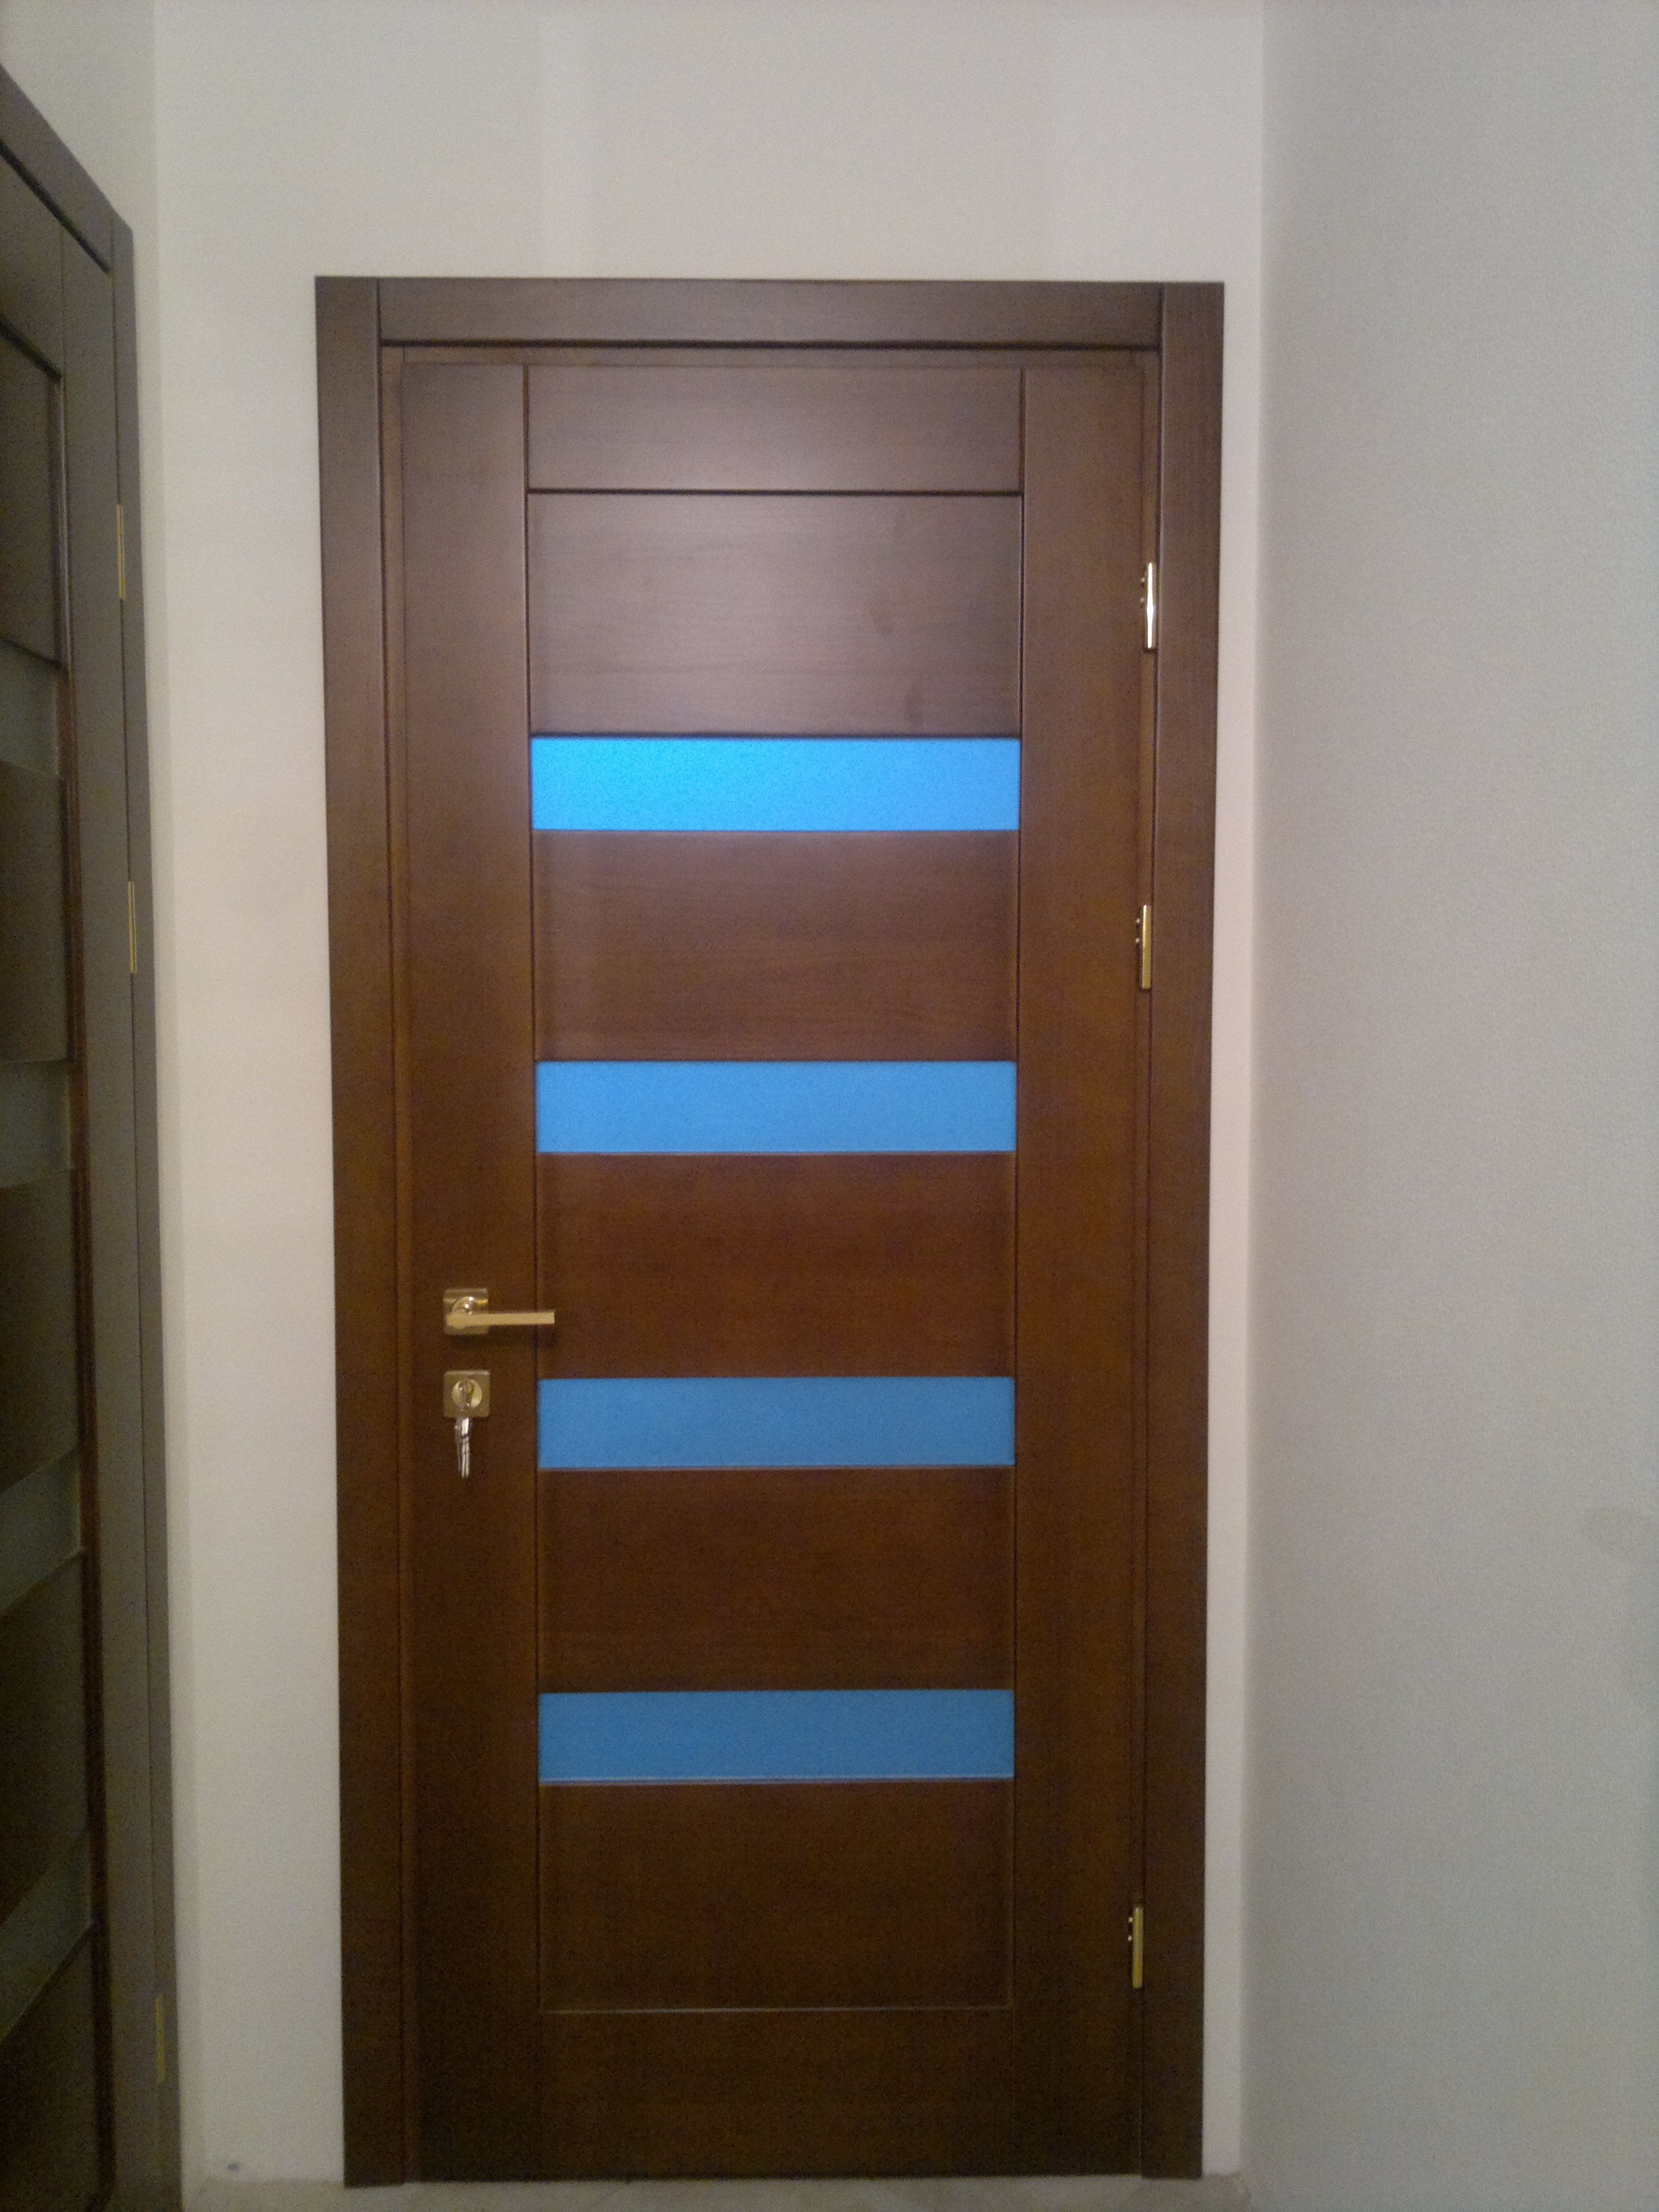 The door is ultra-modern techno style with blue glass